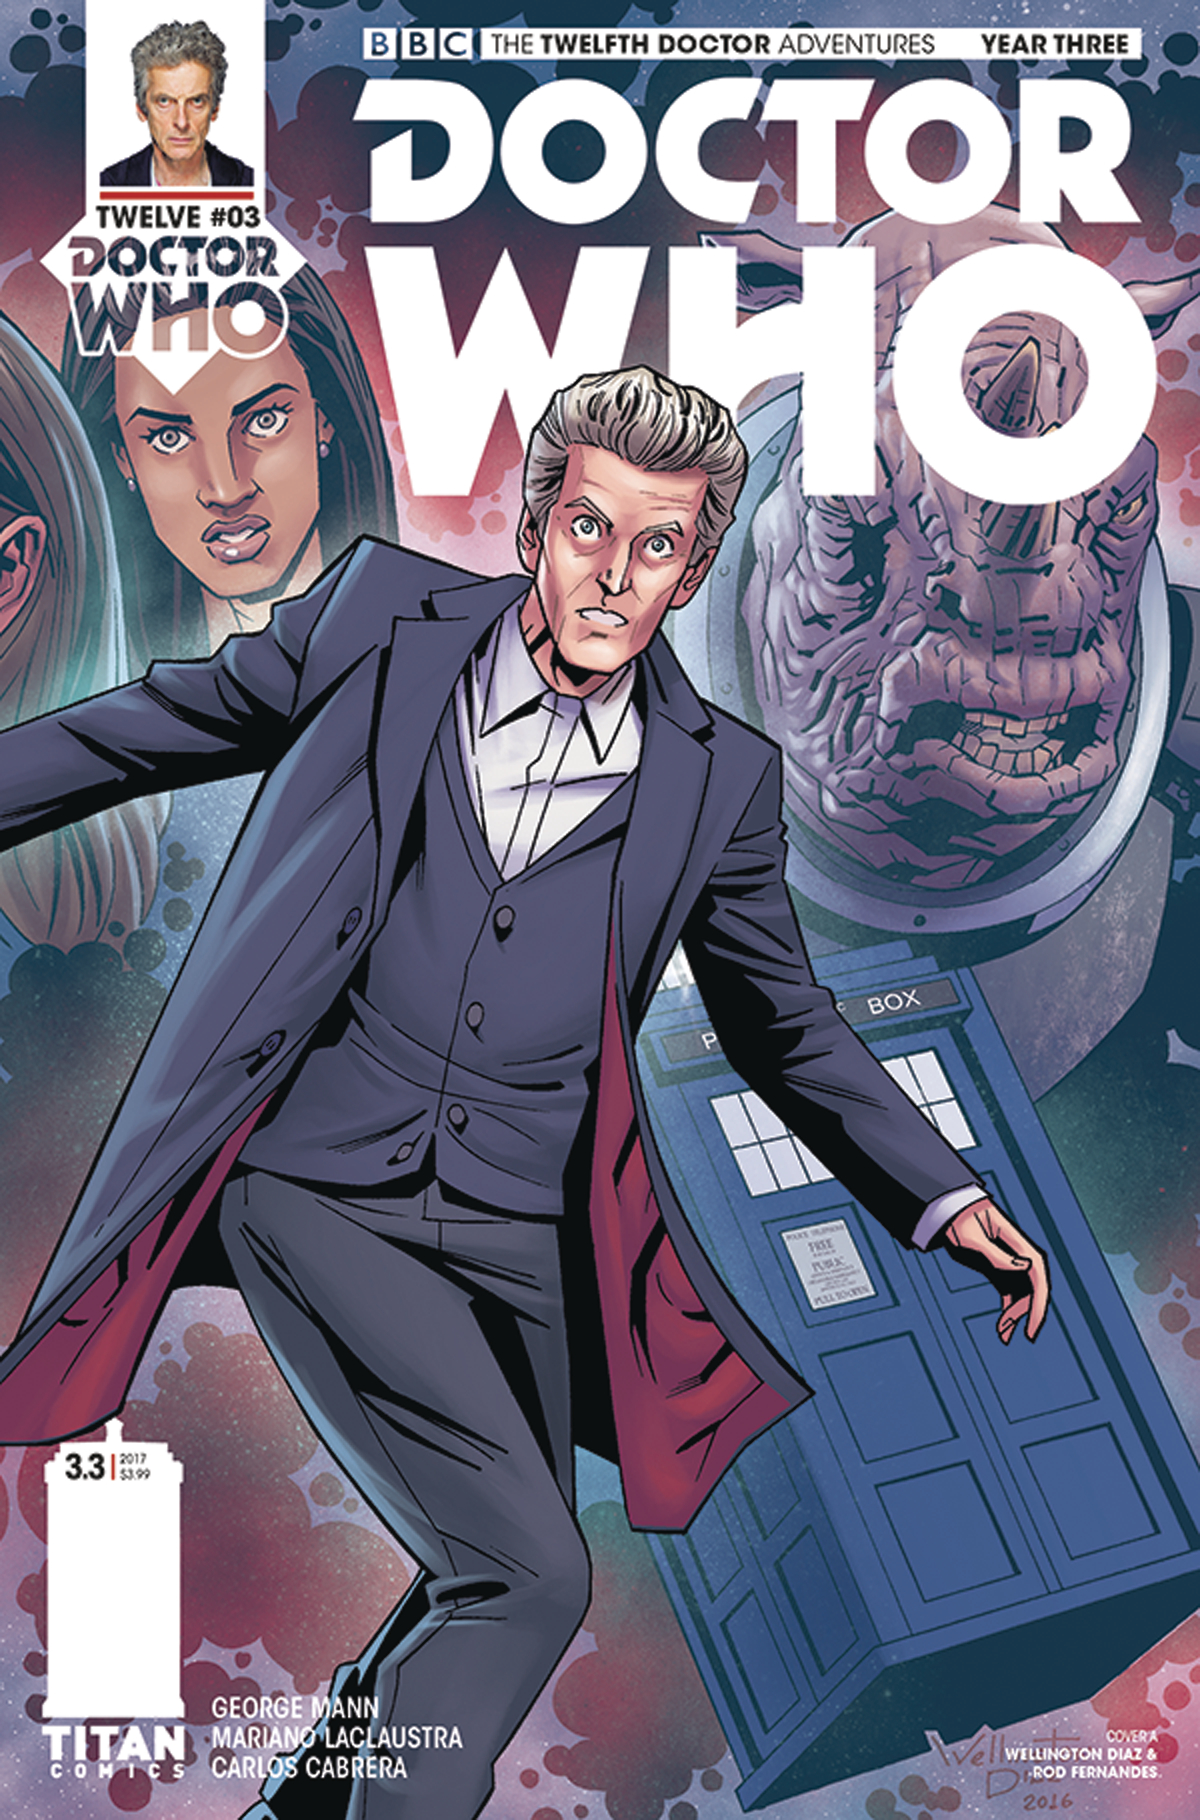 DOCTOR WHO 12TH YEAR THREE #3 CVR A DIAZ